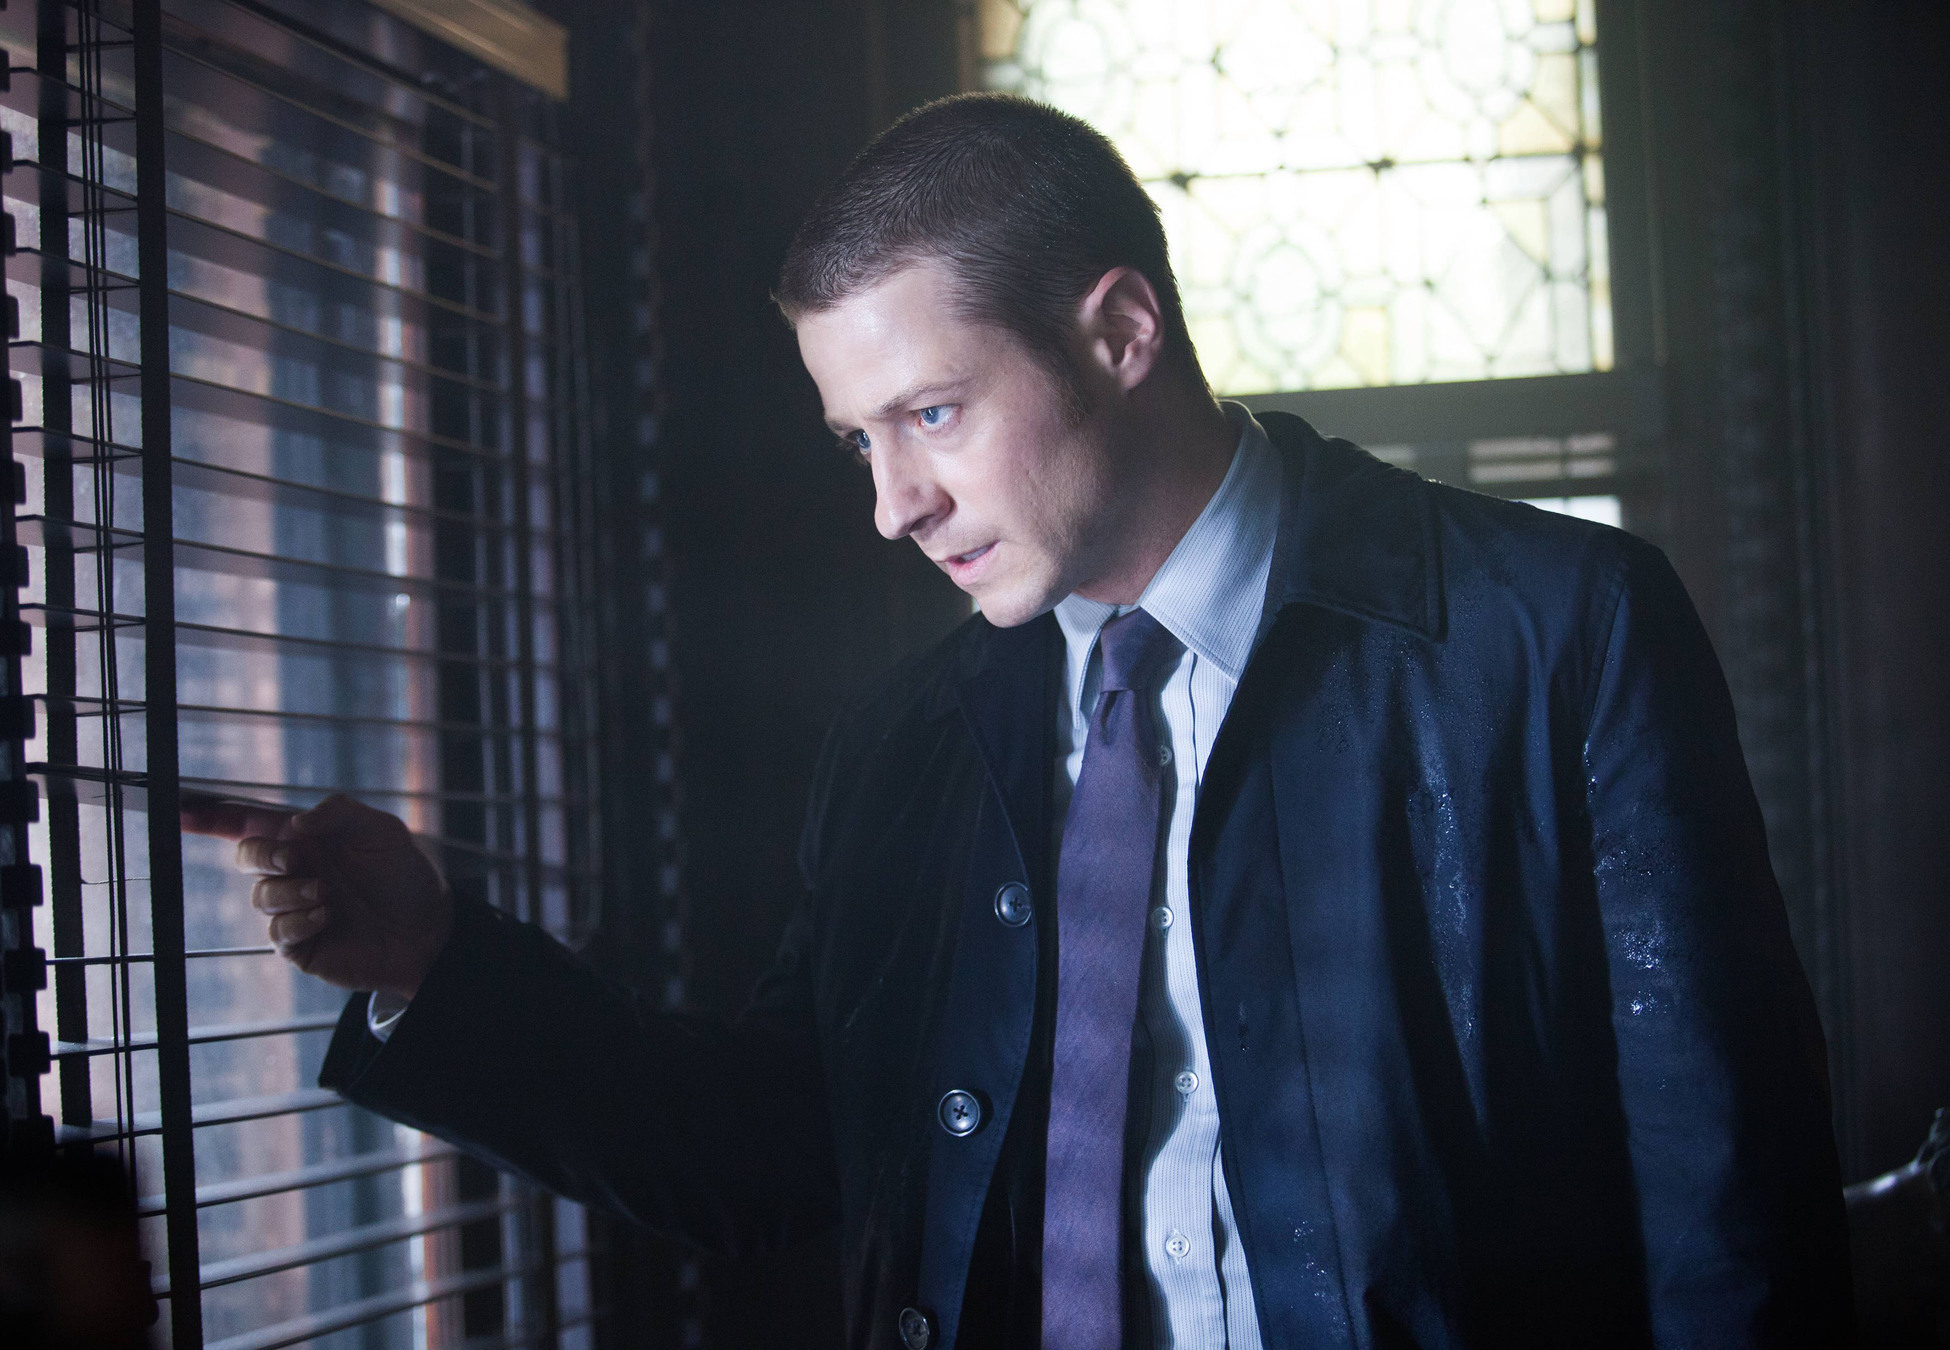 """GOTHAM: Detective James Gordon (Ben McKenzie) looks out for a criminal targeting the Mayor's life in the """"Arkham"""" episode of GOTHAM airing Monday, Oct. 13 (8:00-9:00 PM ET/PT) on FOX. ©2014 Fox Broadcasting Co. Cr: Jessica Miglio/FOX"""